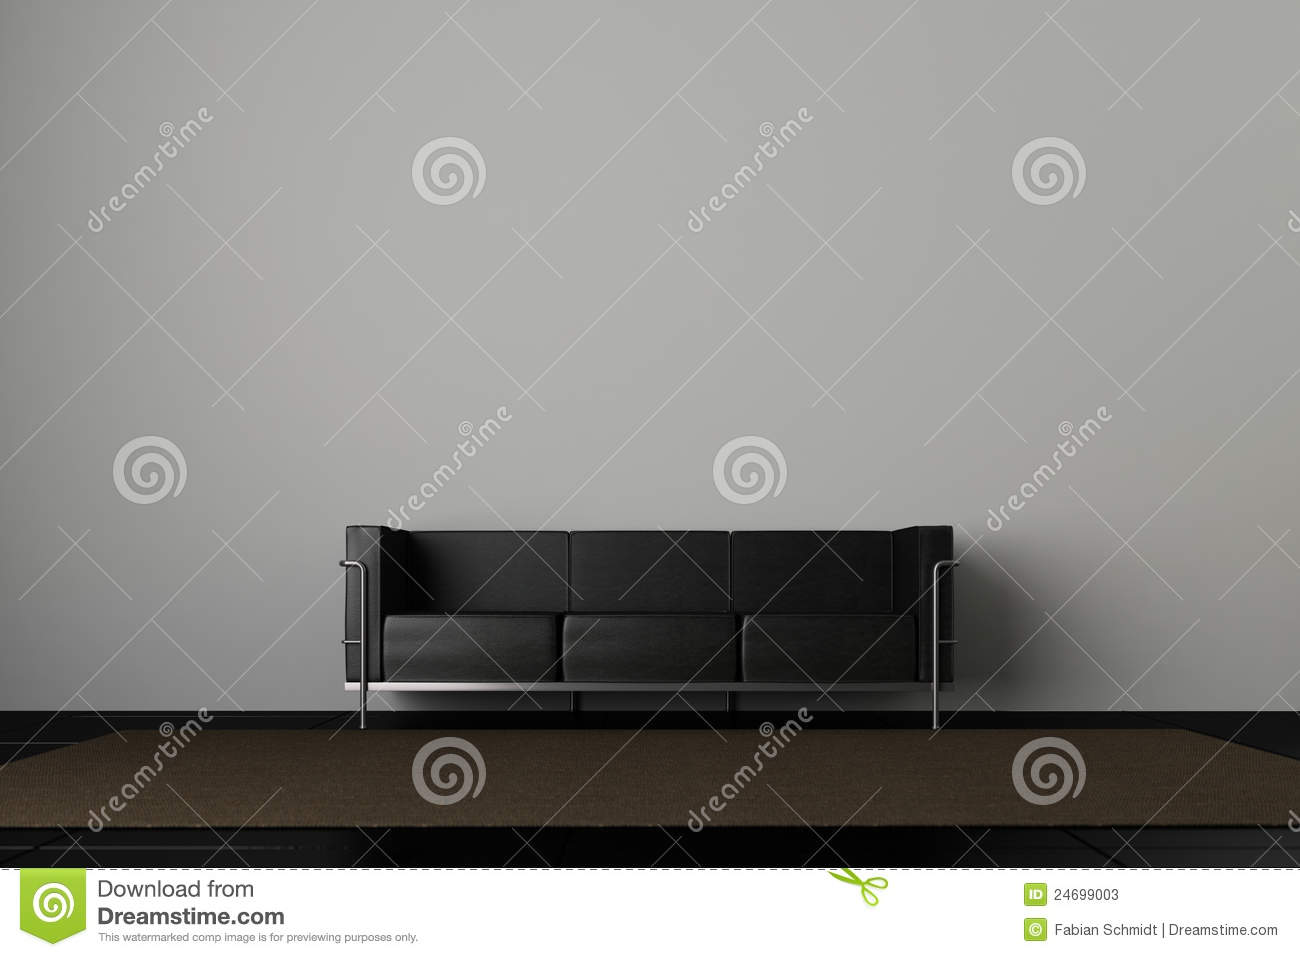 couch und graue wand stock abbildung illustration von innen 24699003. Black Bedroom Furniture Sets. Home Design Ideas